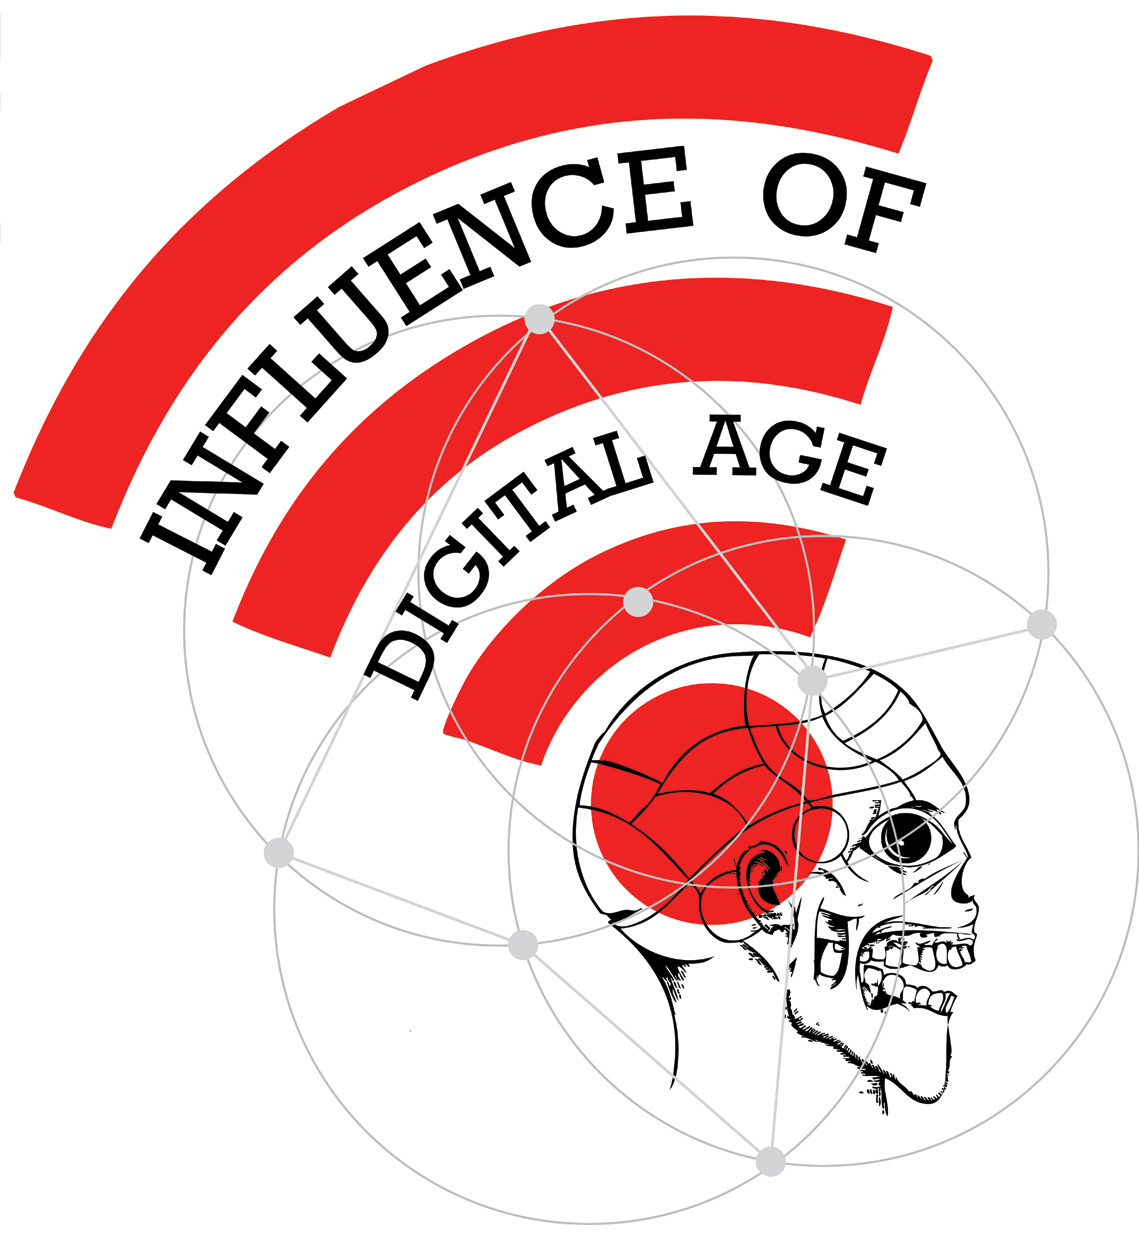 InfluenceofDigitalAge